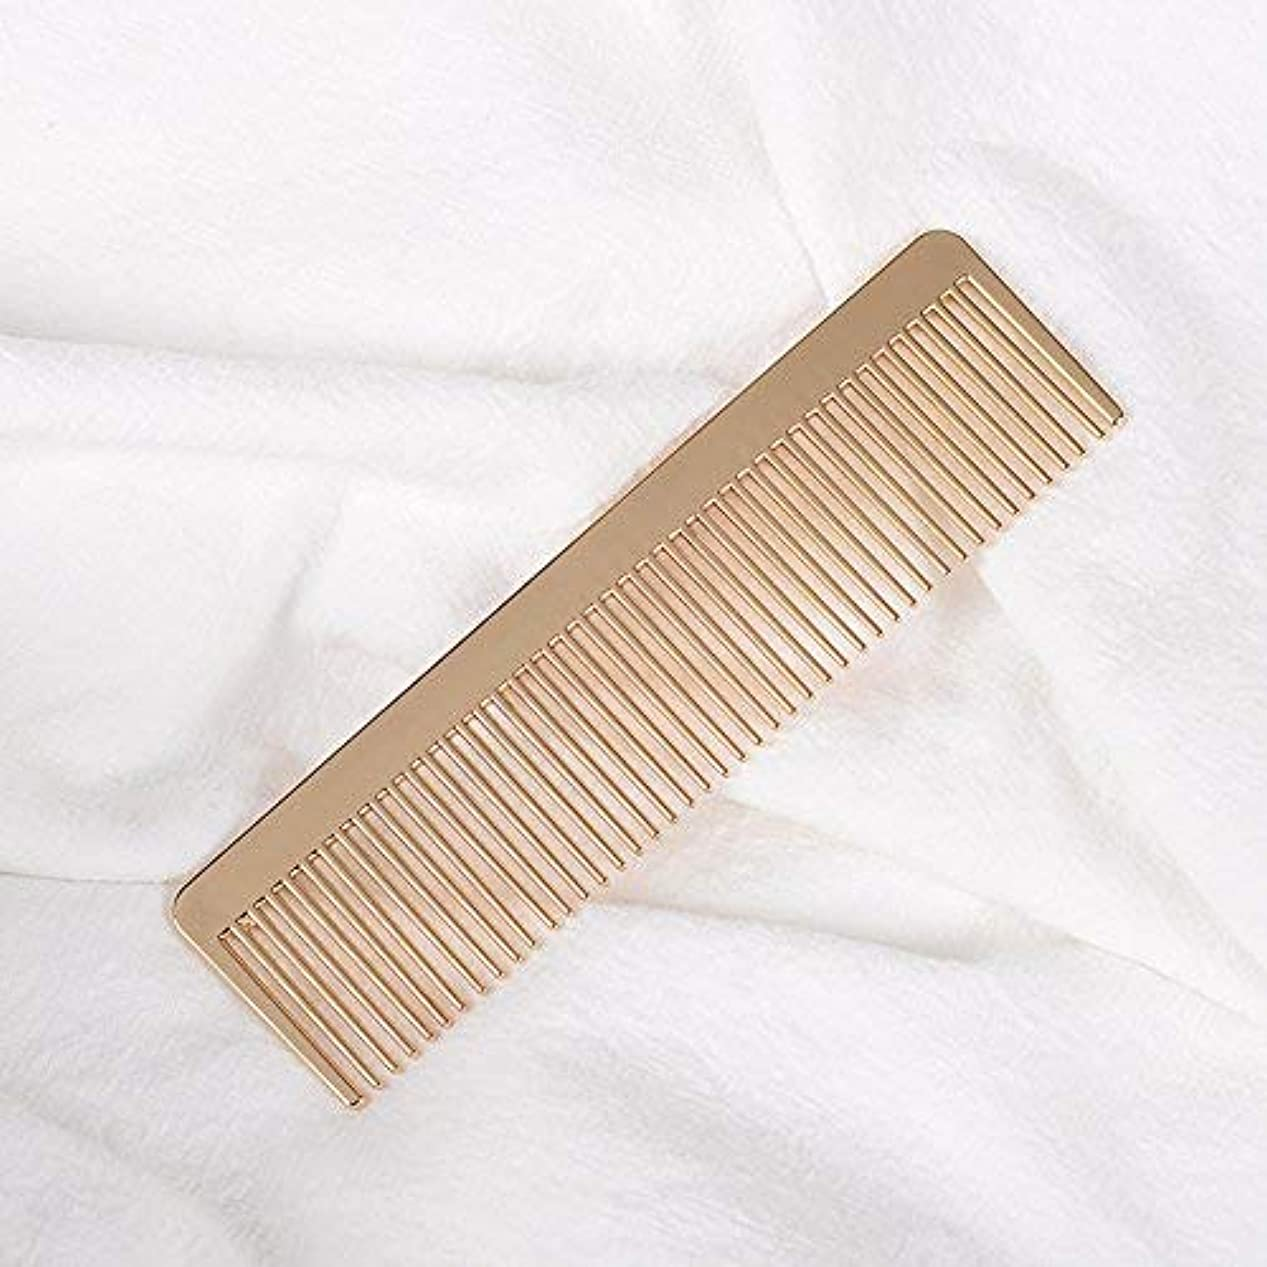 かろうじて事実上バケツGrtdrm Portable Metal Comb, Minimalist Pocket Golden Hair Comb for Women Men Unisex [並行輸入品]